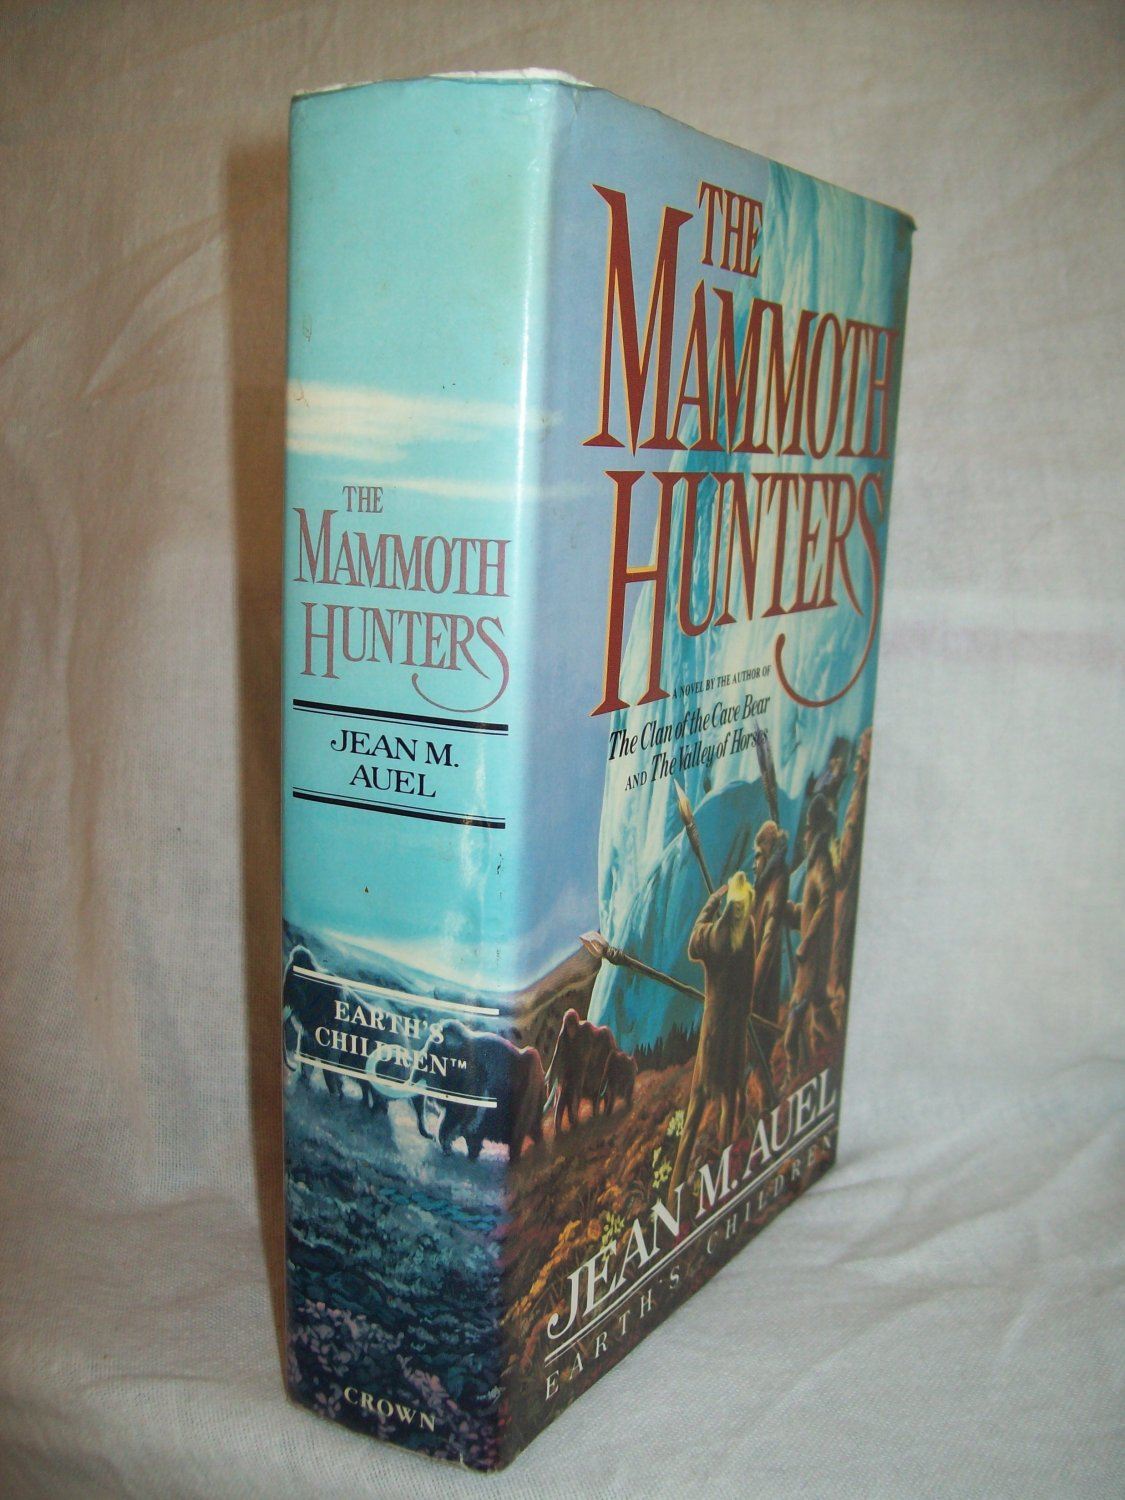 The Mammoth Hunters. Jean Auel, author. 1st edition, 1st printing. VG+/VG+